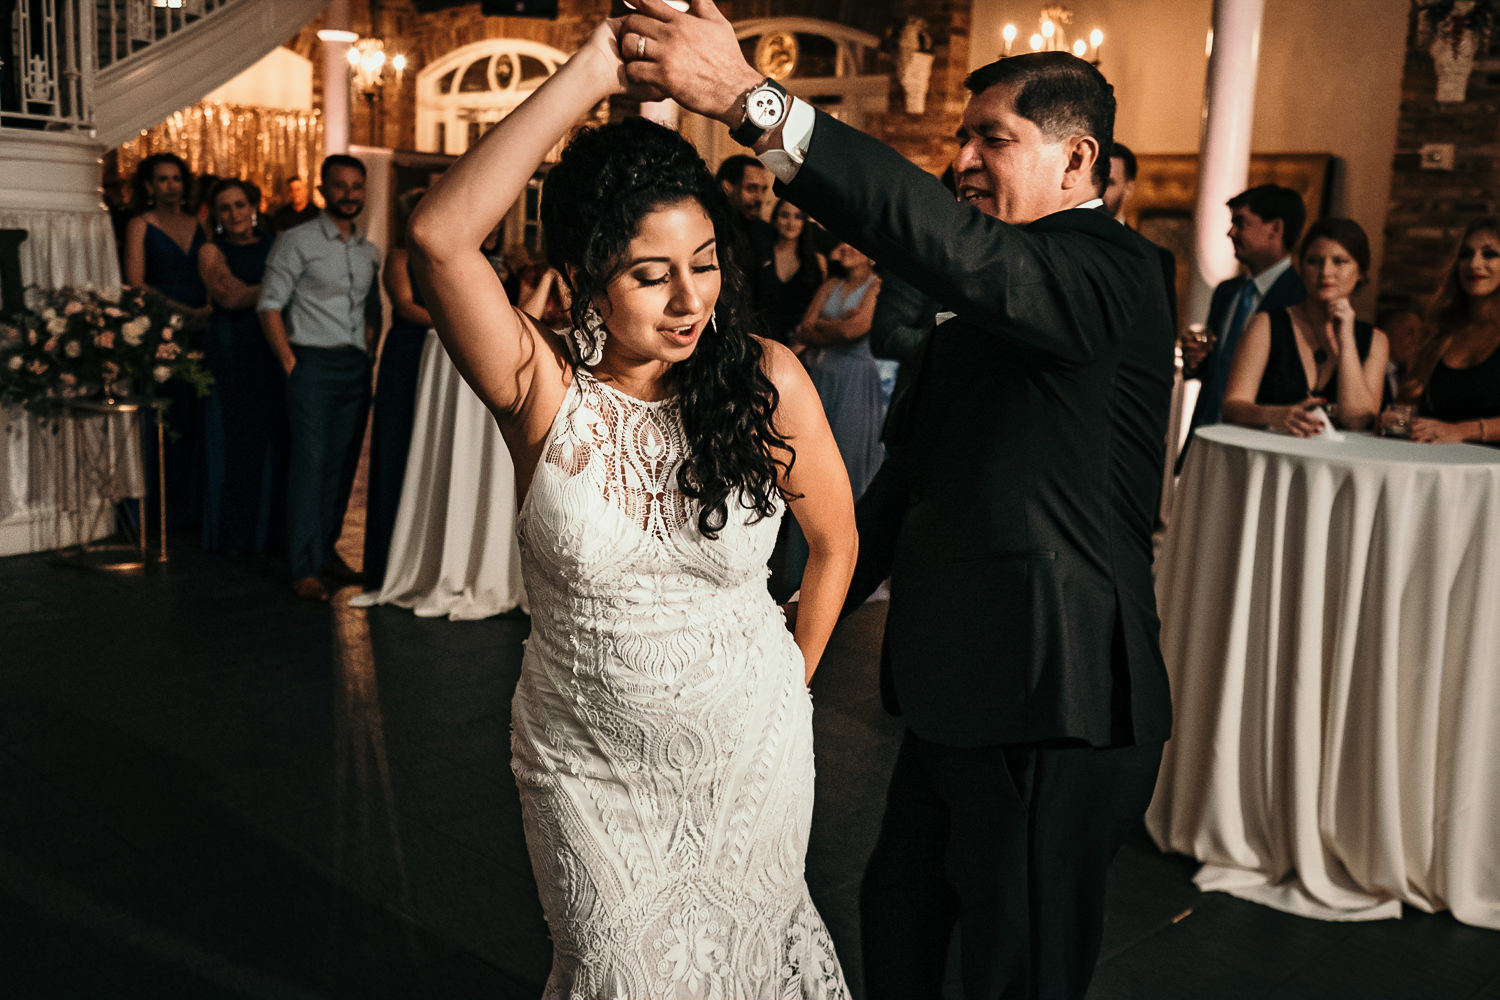 father spinning bride during father-daughter dance